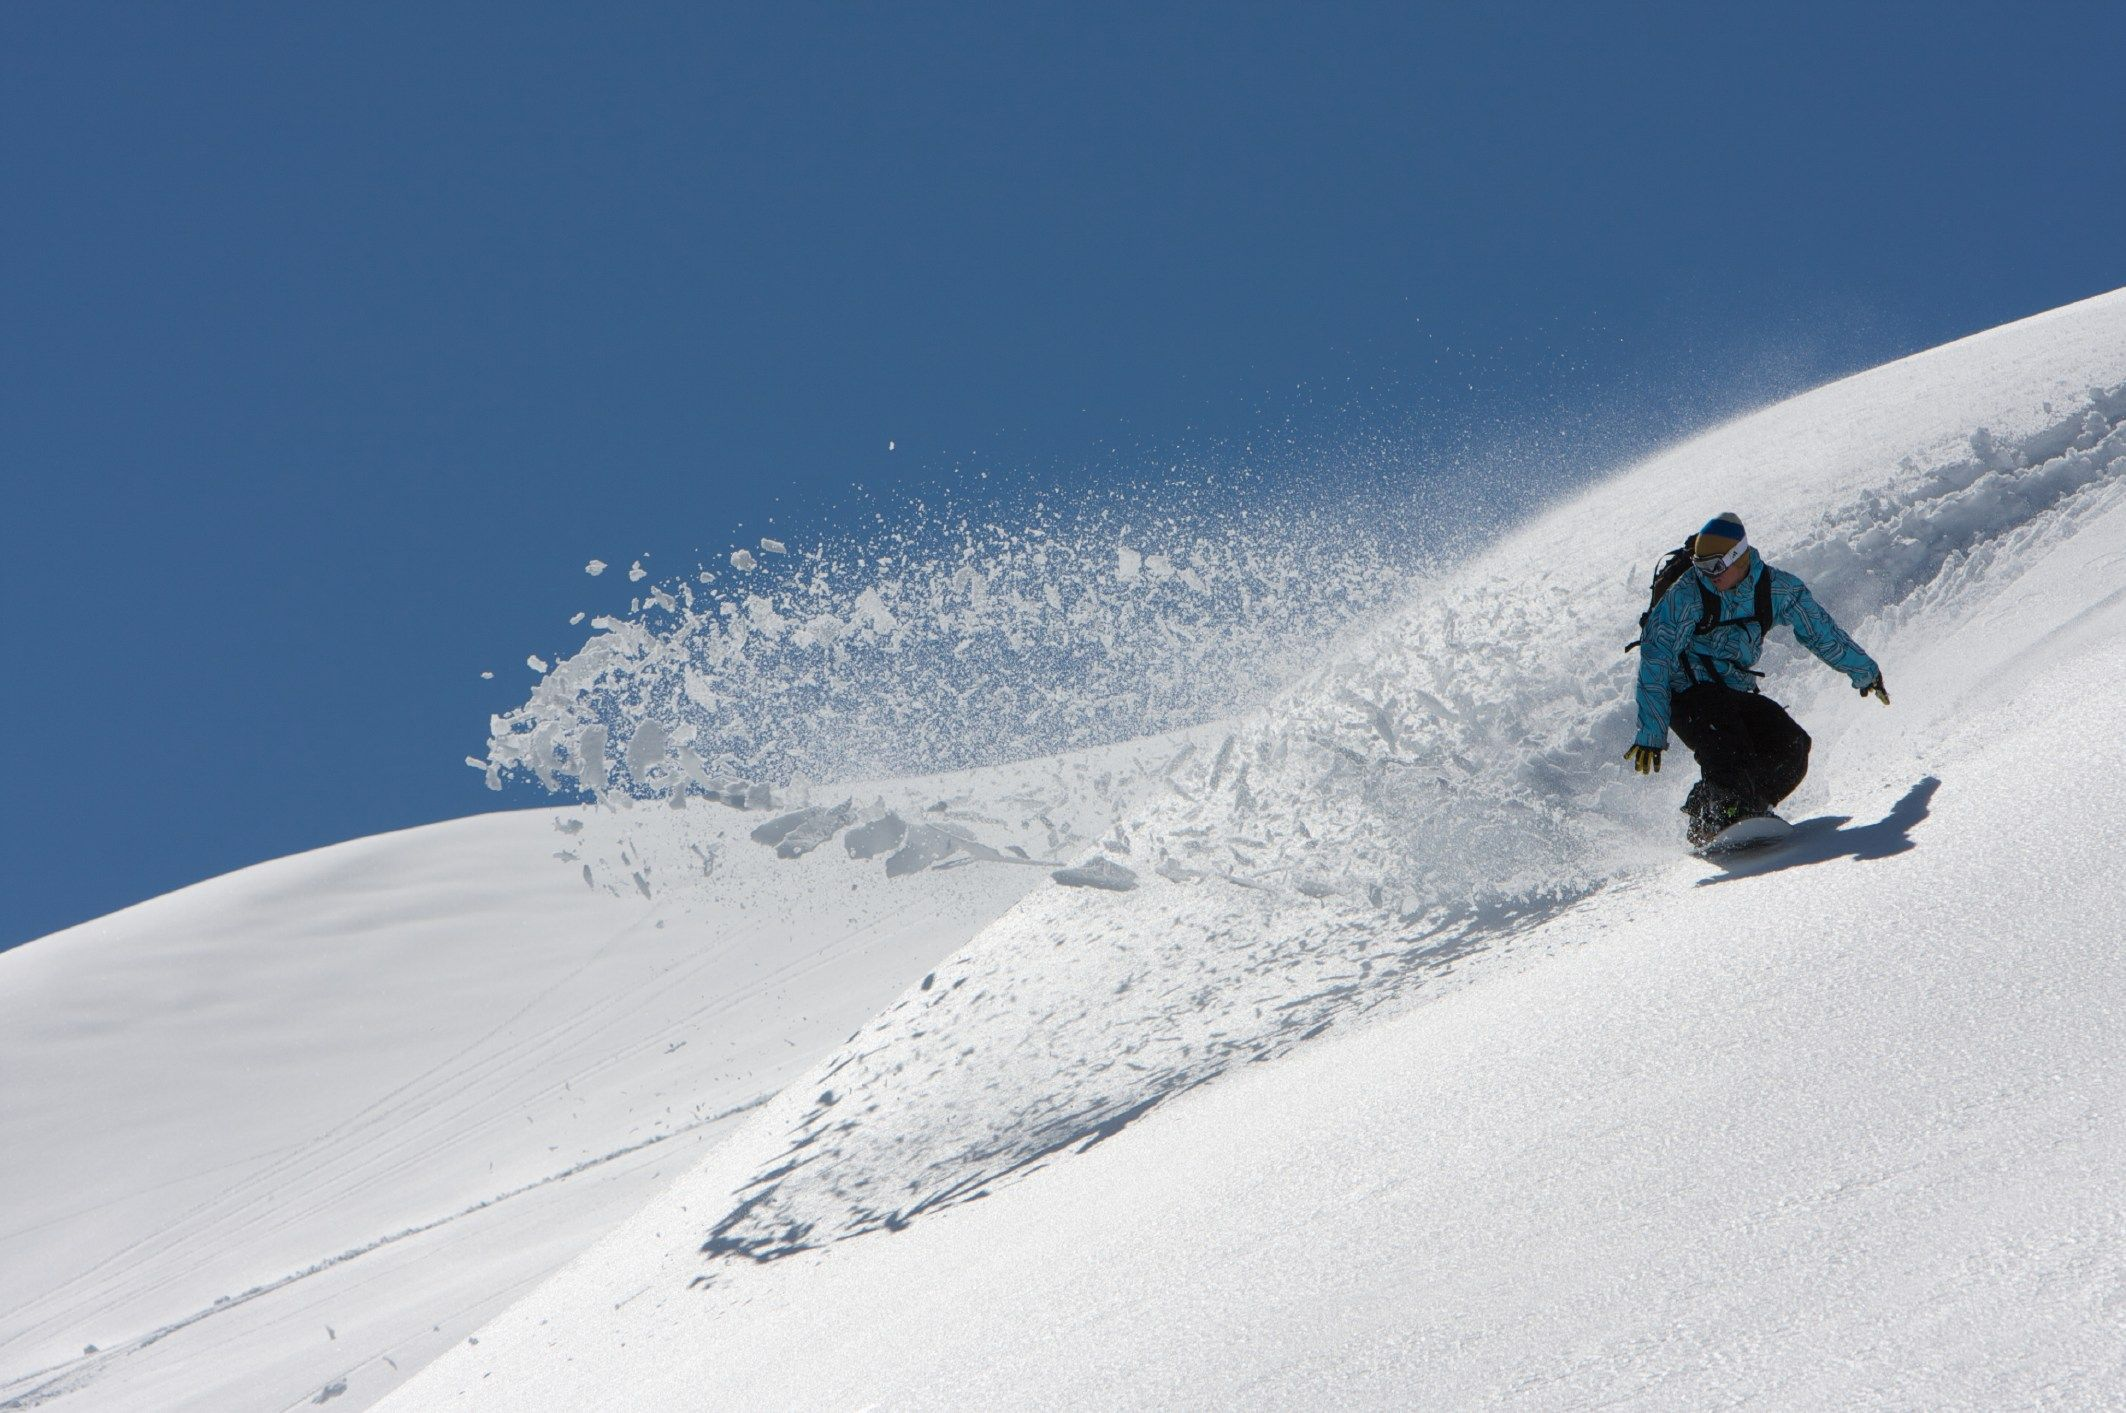 cc8fe63ca528 snowboard freeride wallpaper - Recherche Google